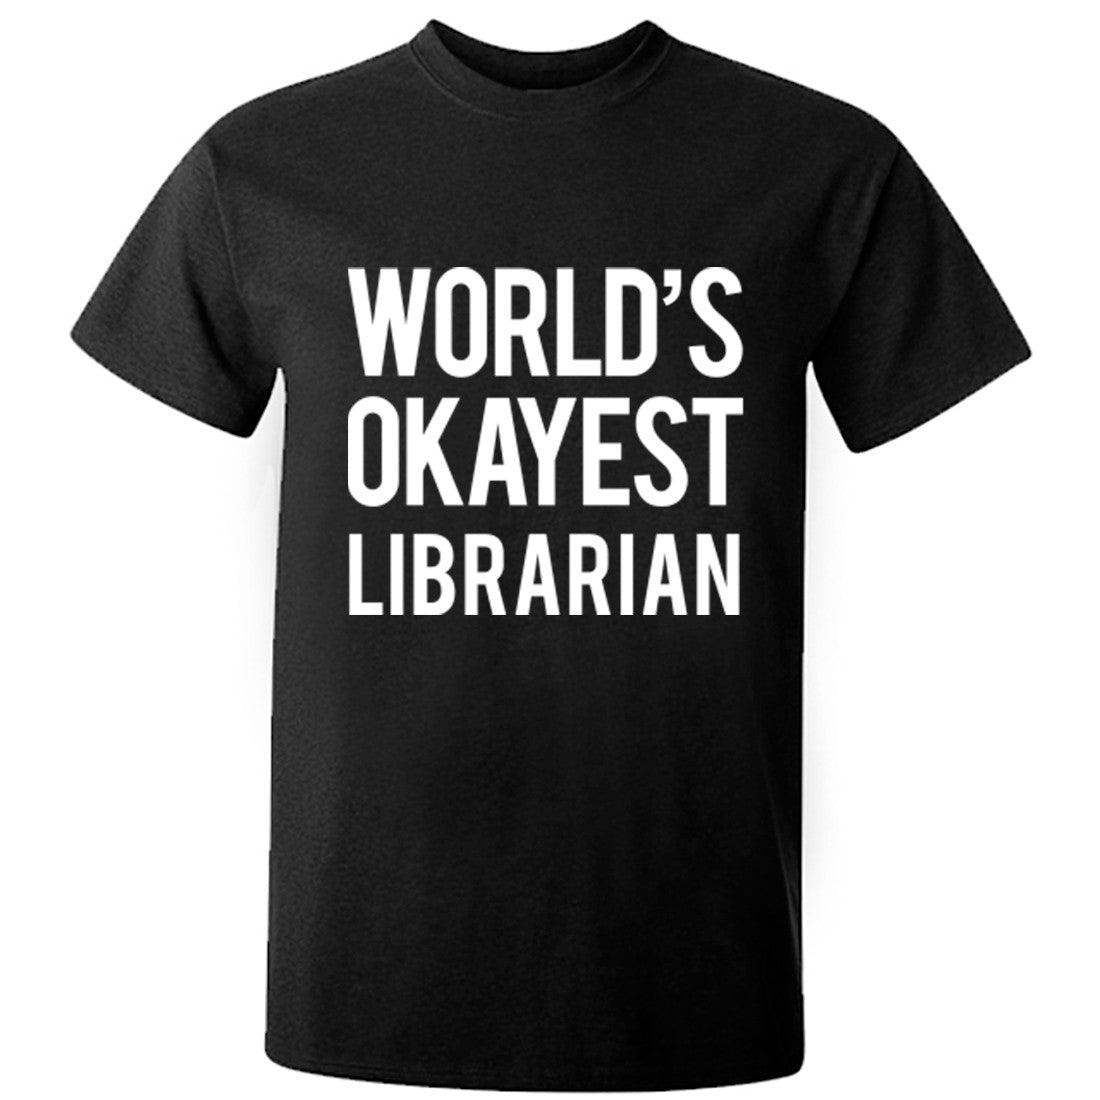 Worlds Okayest Librarian Unisex Fit T-Shirt K0503